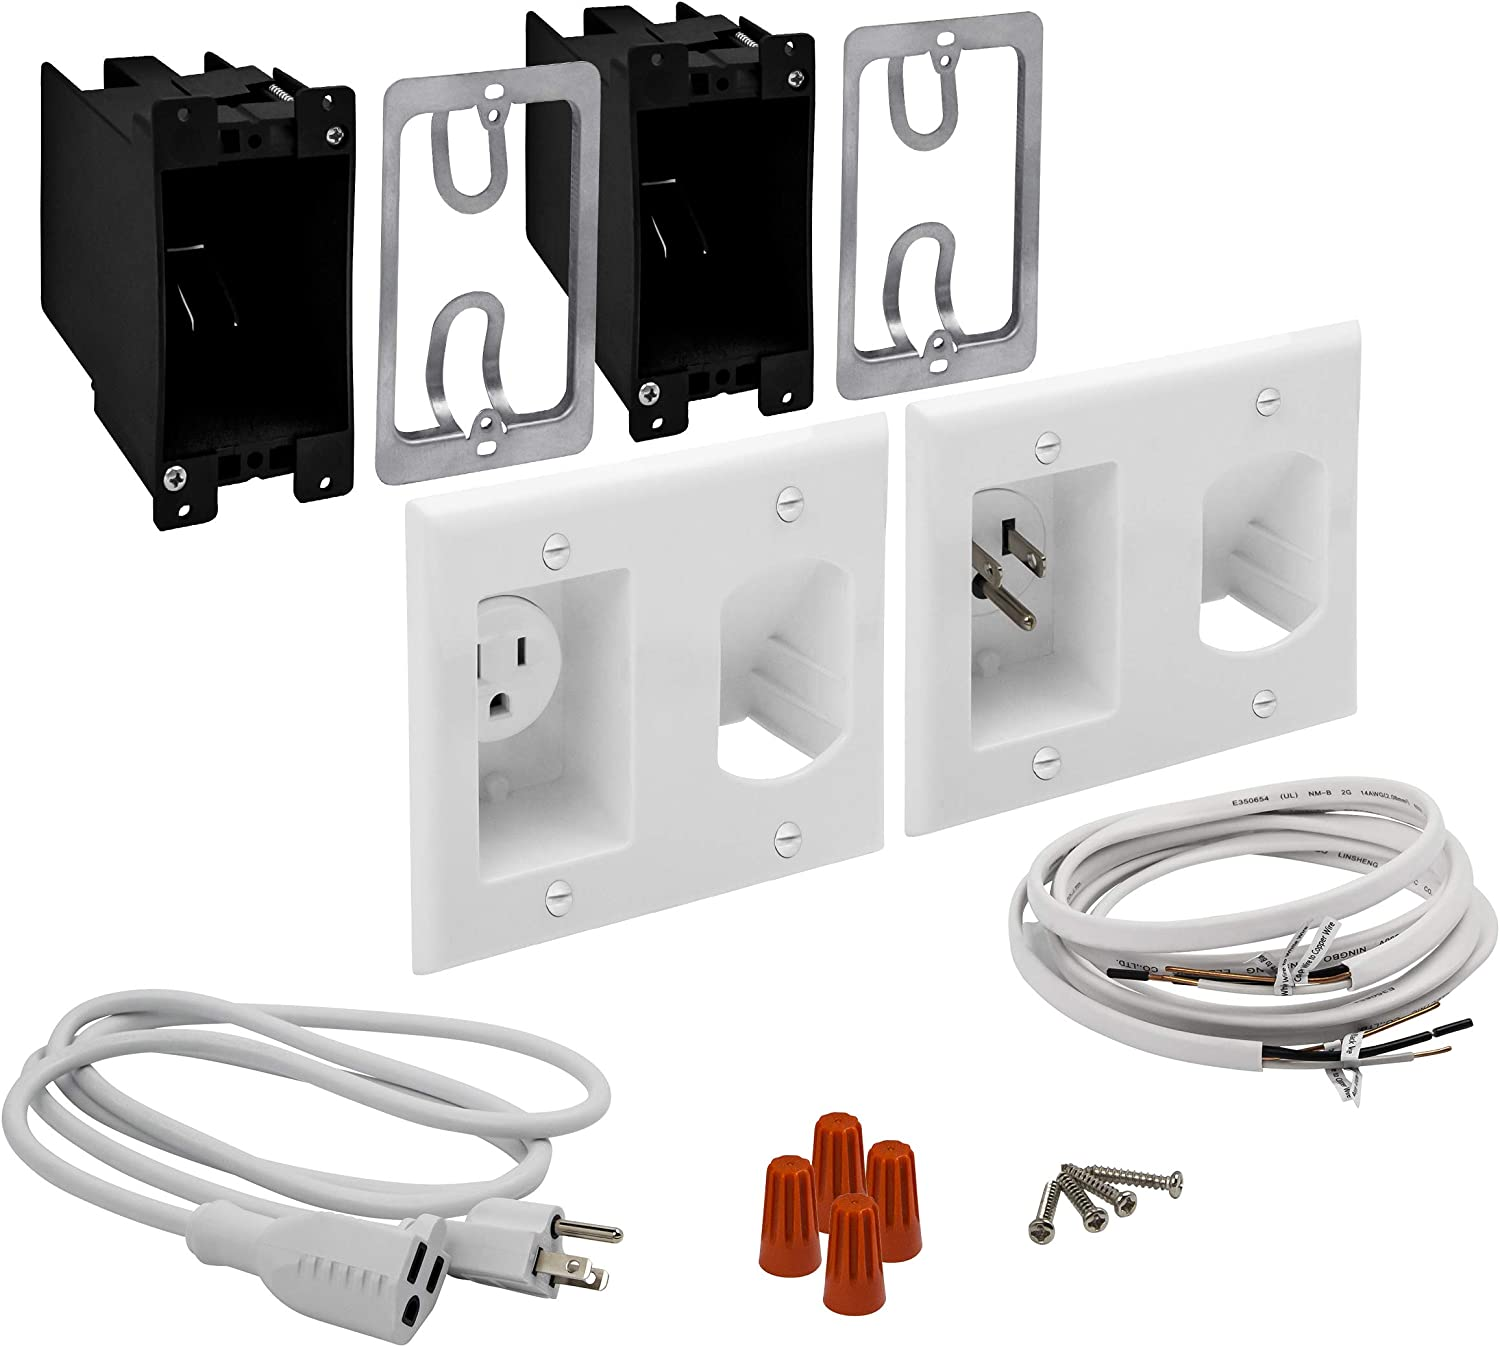 TOPGREENER Cable Management System In-Wall for Wall Mounted Flat Screen TV, 2-Gang Low Voltage Pass Through Cable Concealer Wall Plates, TG115RPS, White